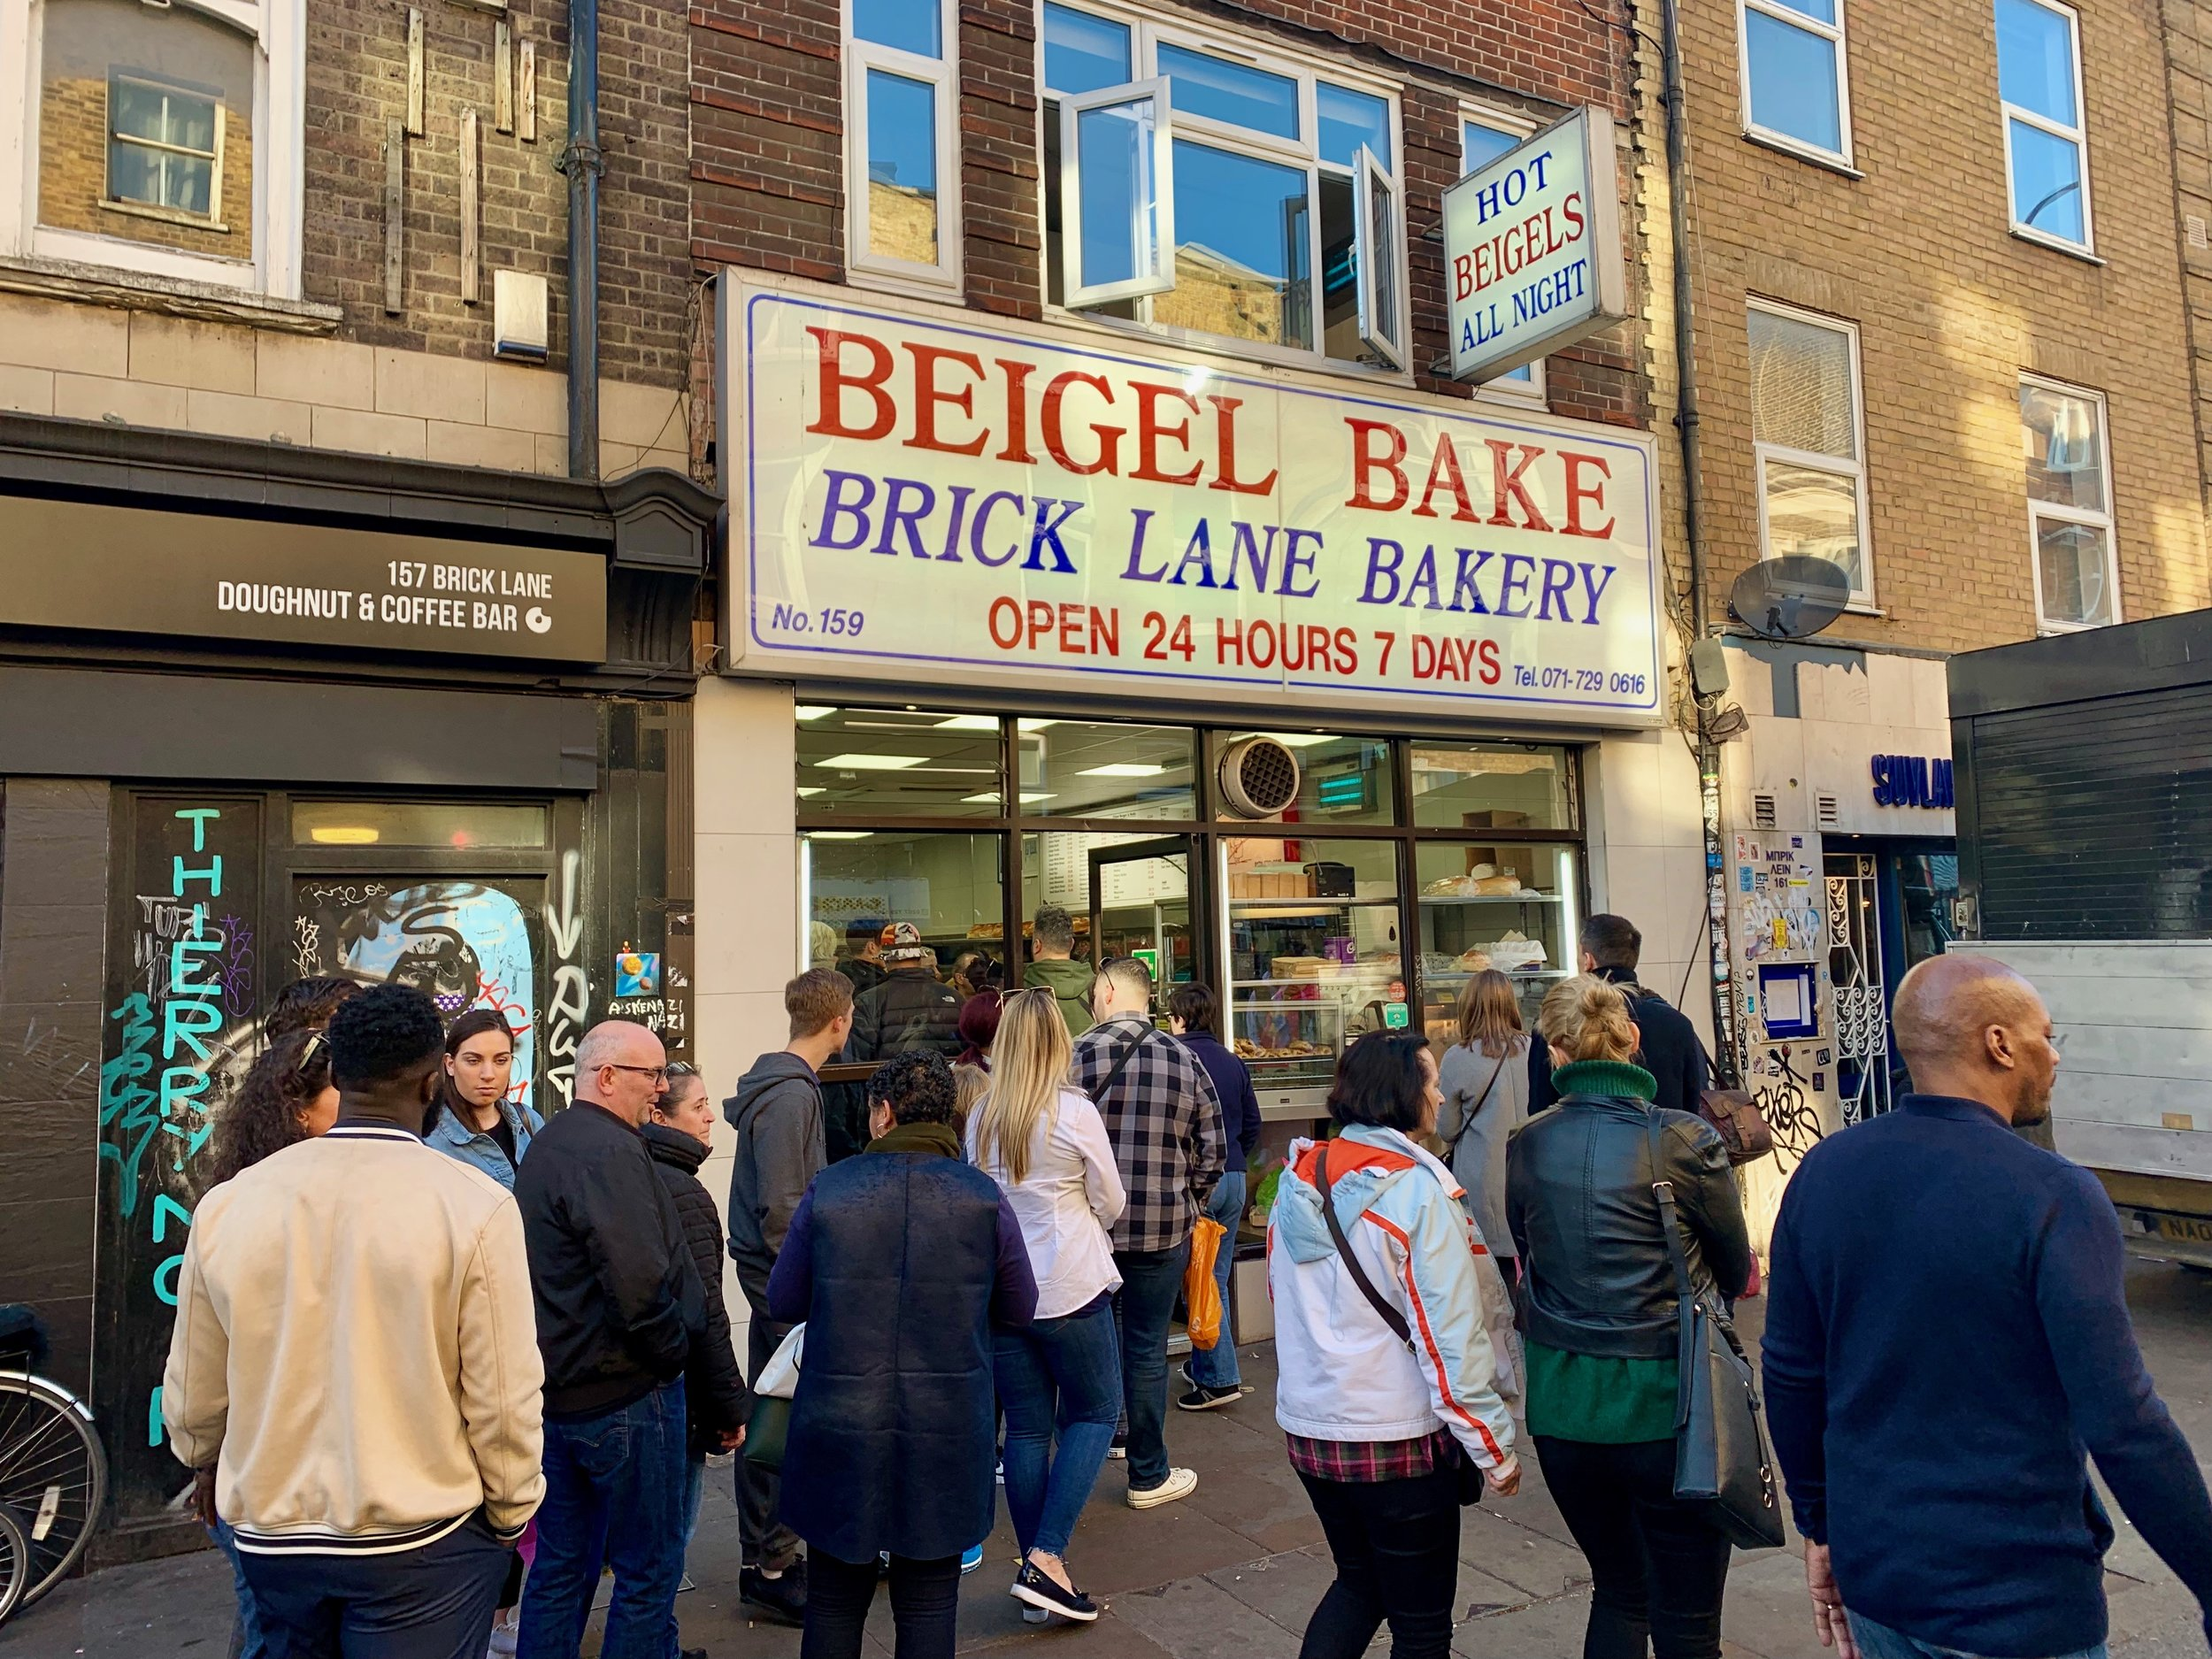 Beigel Bake is a must stop for a salted beef bagel!